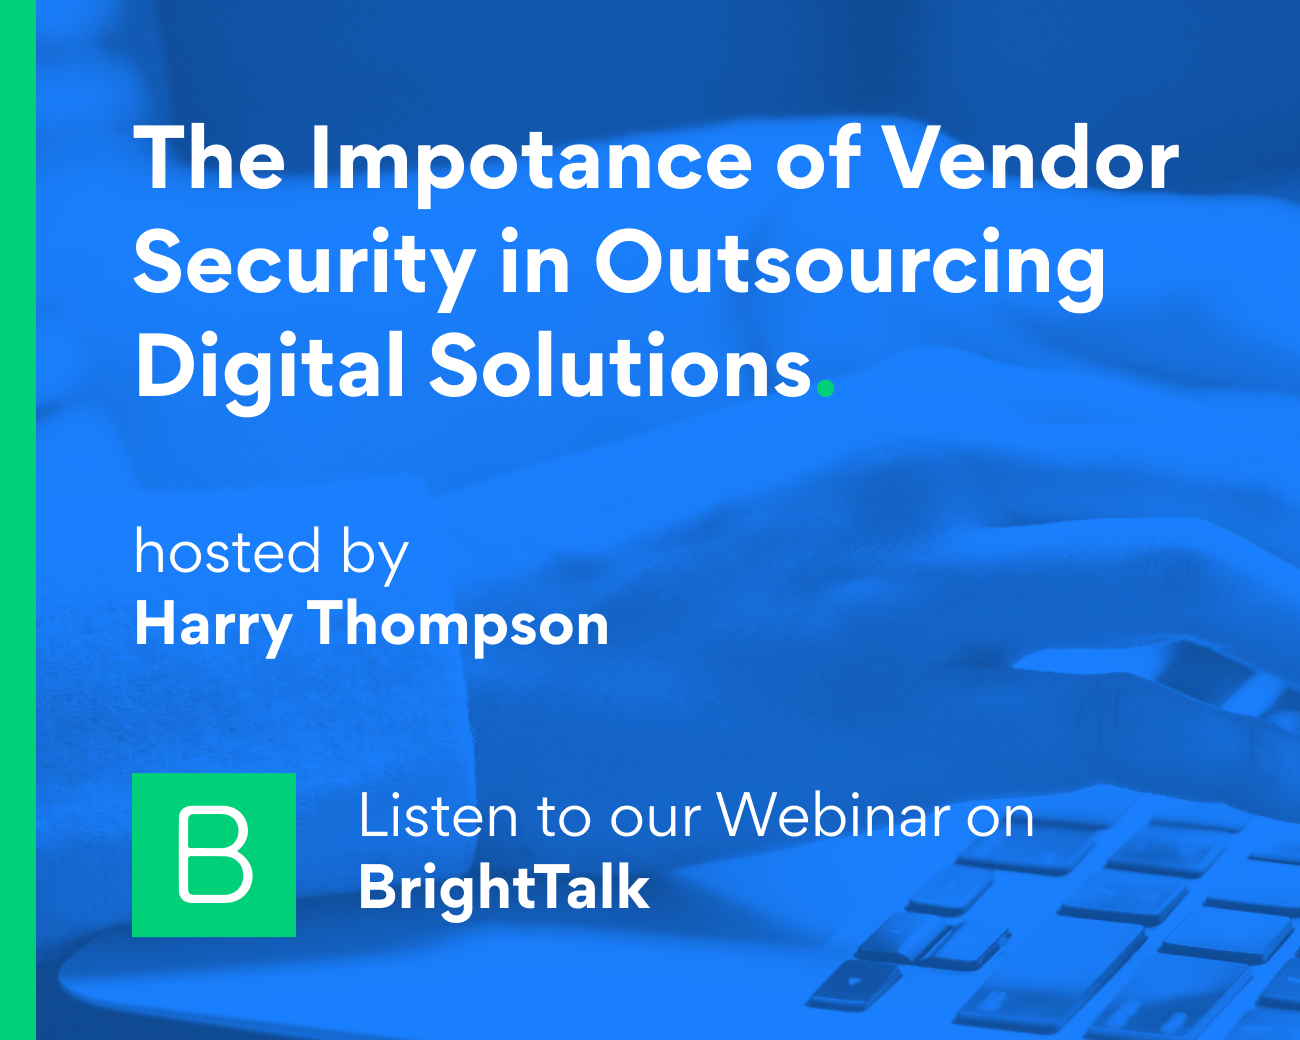 The Impotance of Vendor Security in Outsourcing Digital Solutions